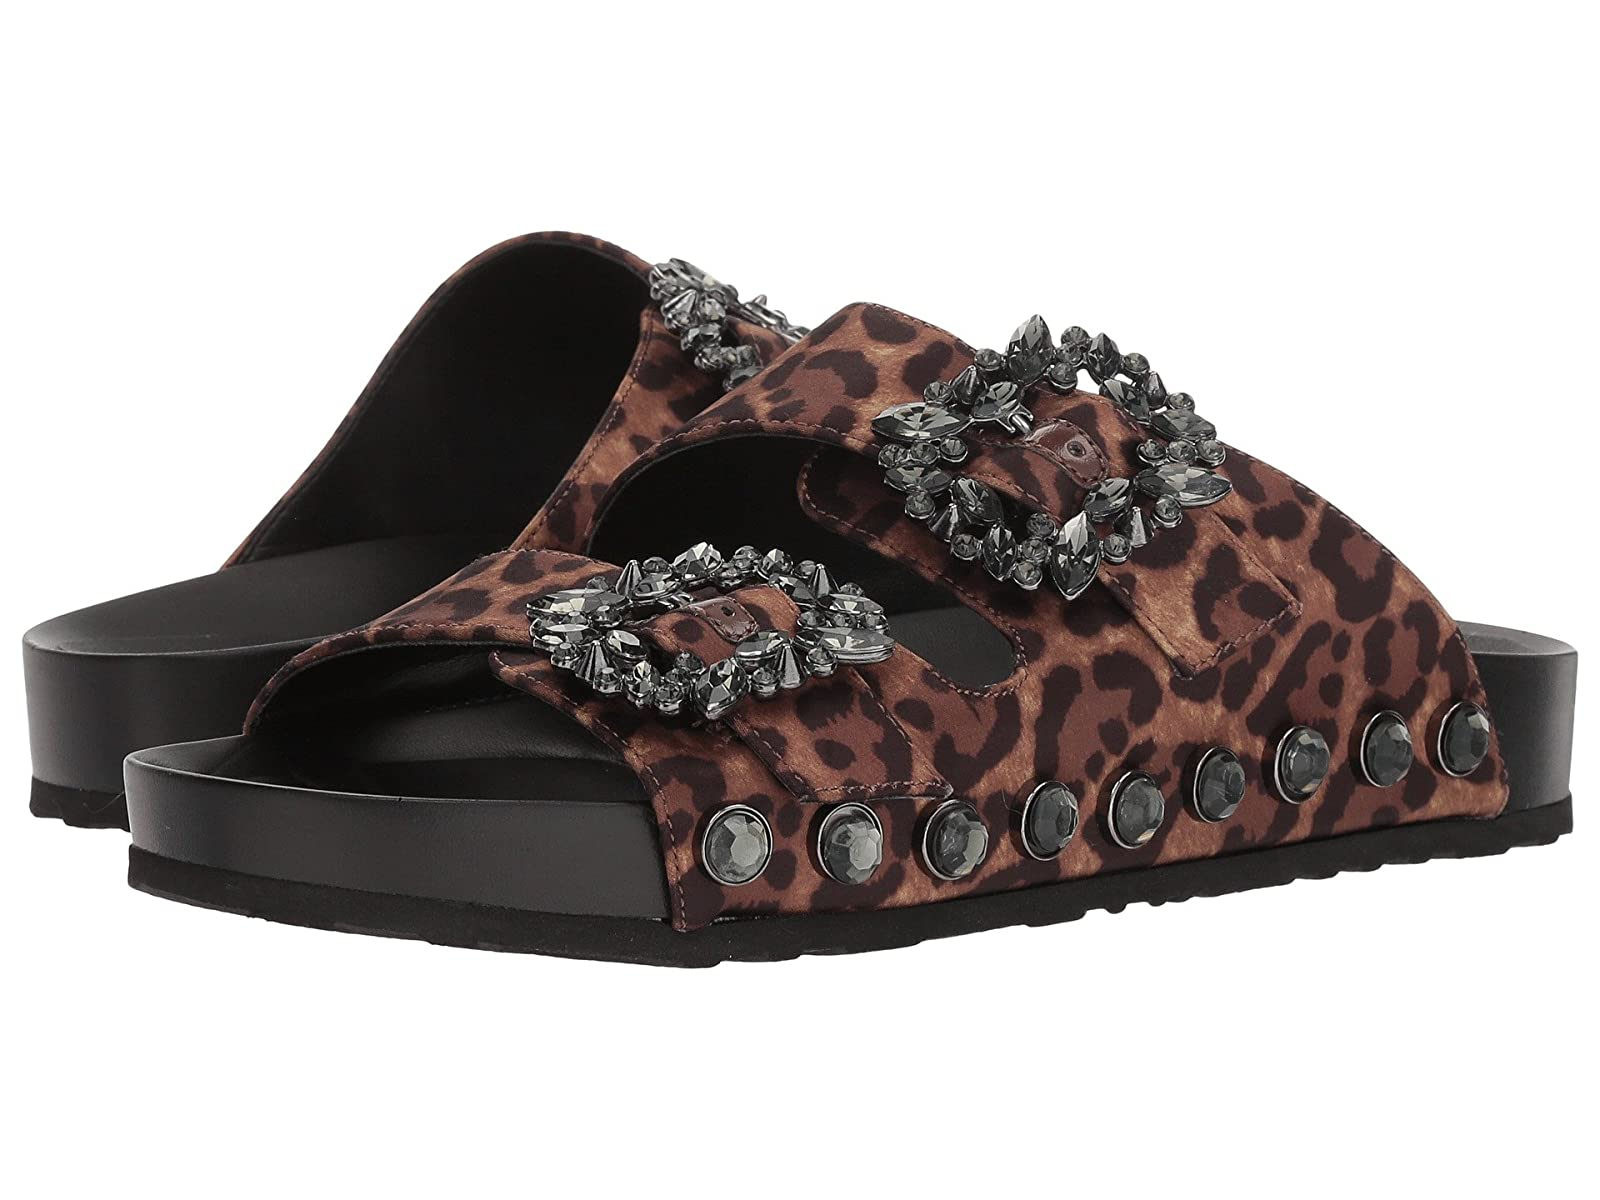 Jessica Simpson GemeliaCheap and distinctive eye-catching shoes